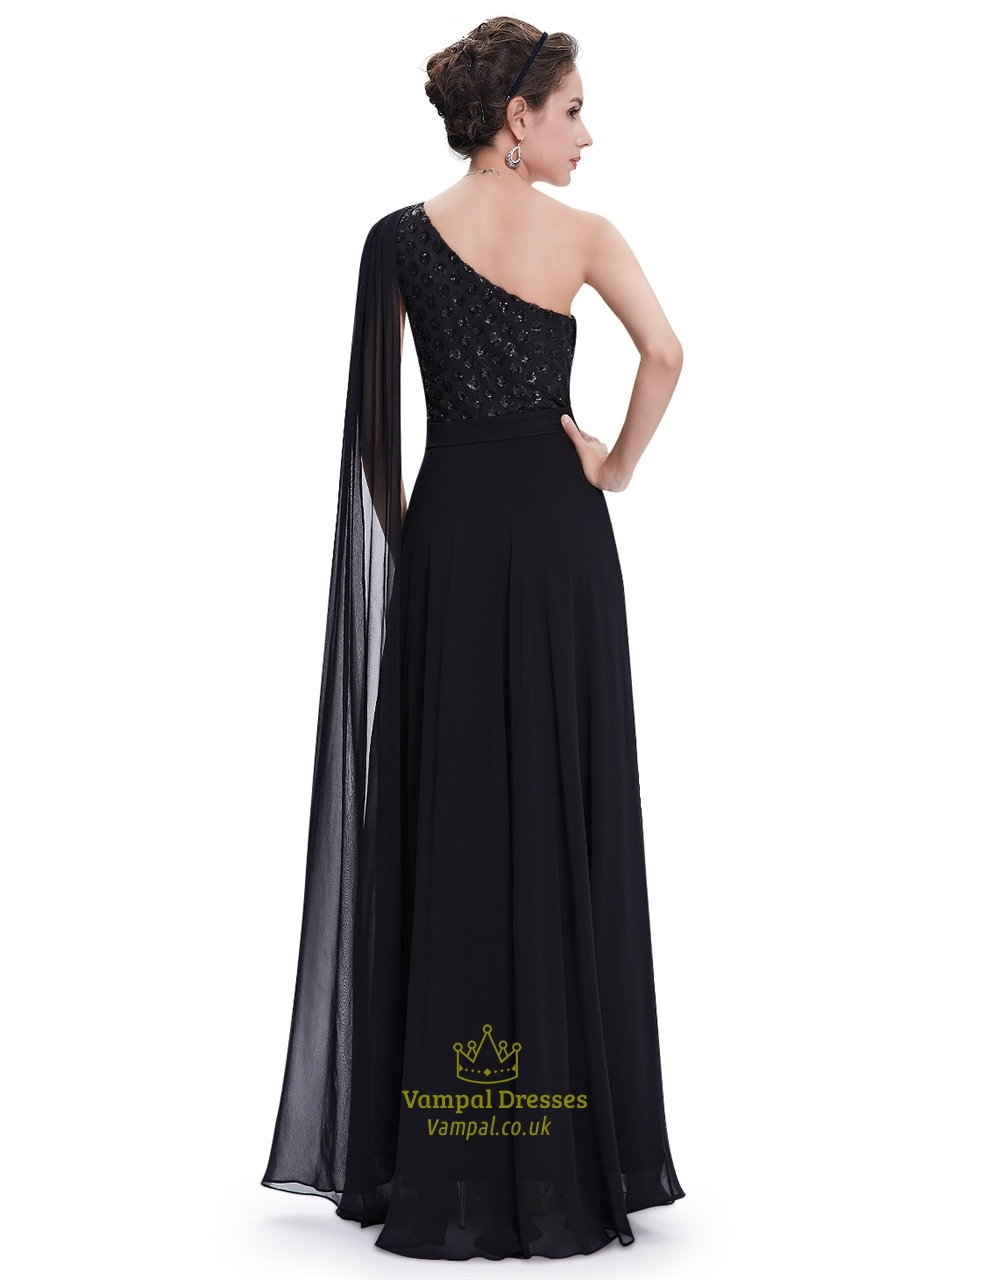 Black Chiffon Embellished One Shoulder Prom Dress With Watteau Train ...